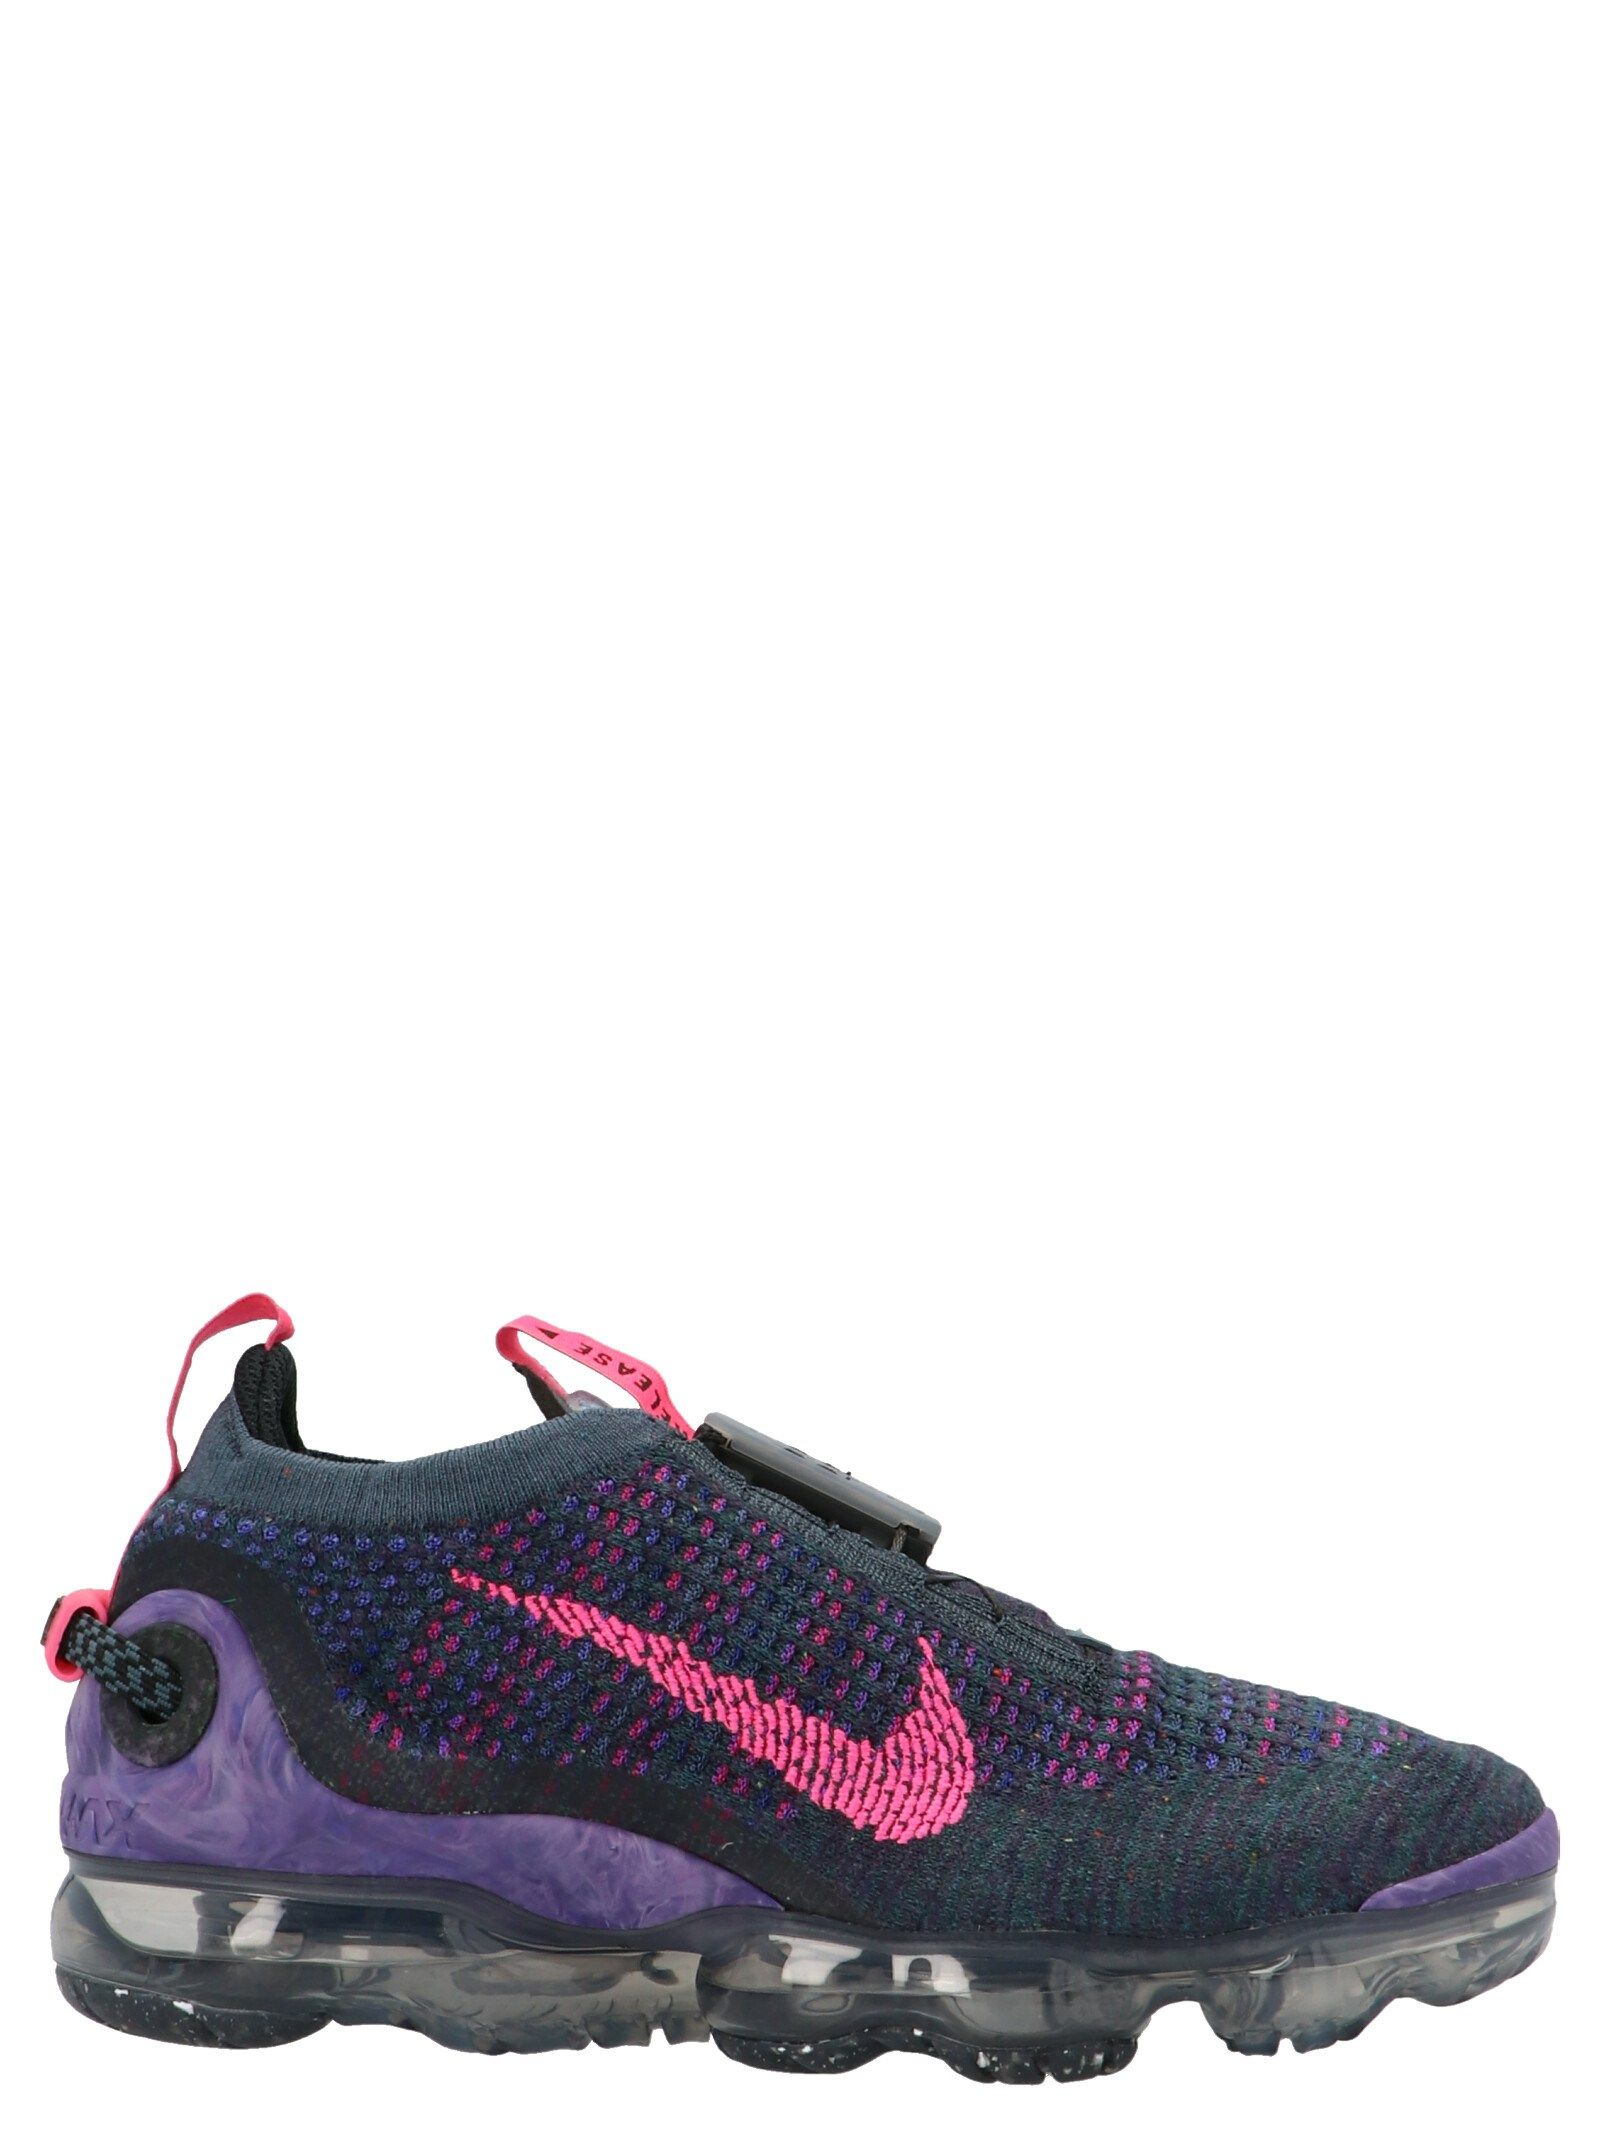 Nike NIKE WOMEN'S MULTICOLOR OTHER MATERIALS SNEAKERS